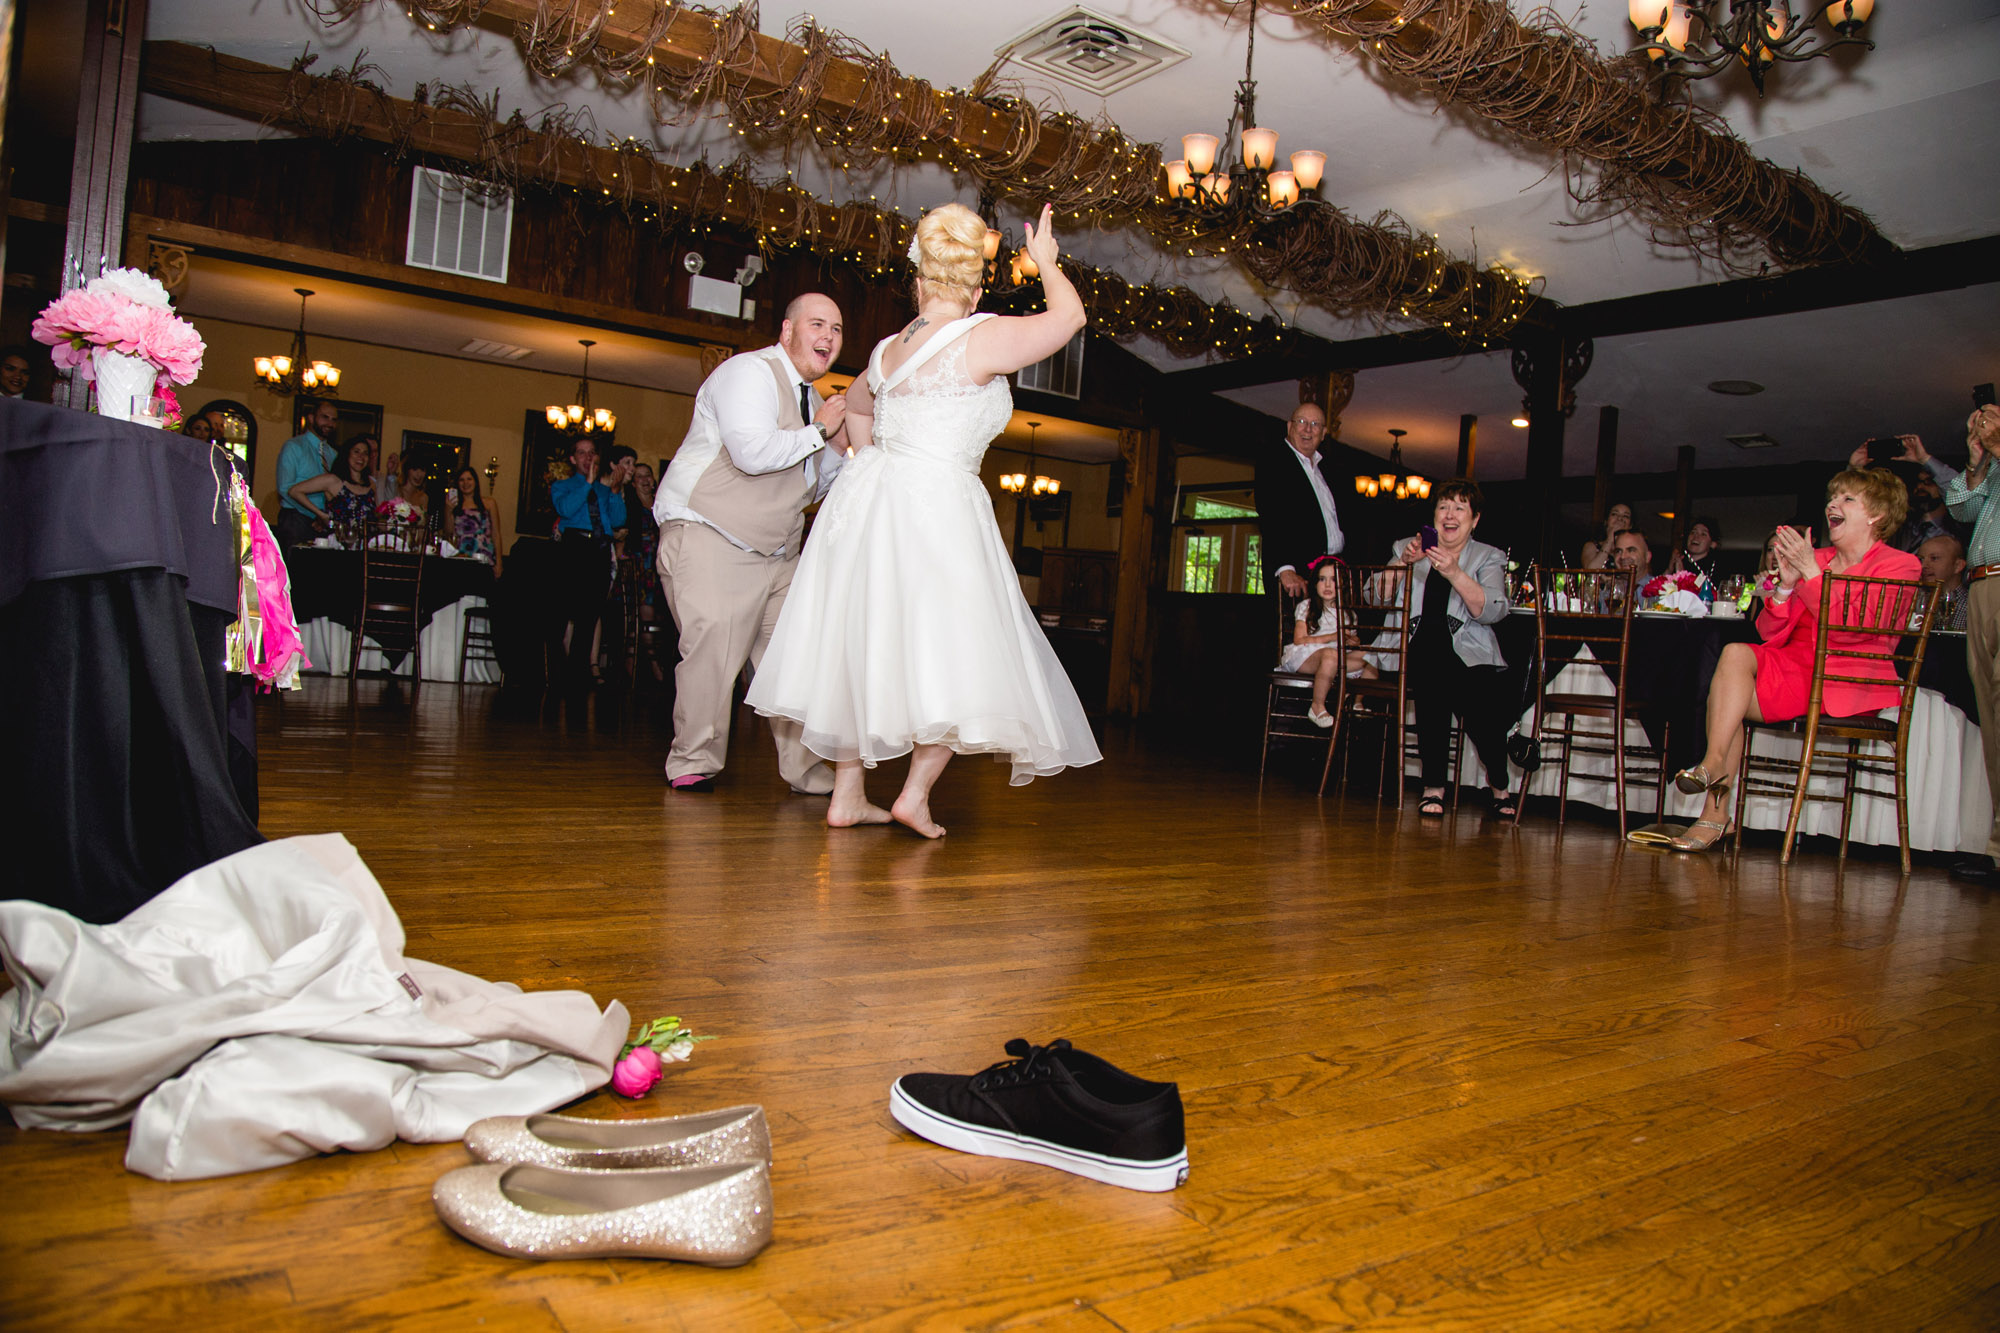 Caitlin & Joe's Stroudsmoor Woodsgate Wedding 85